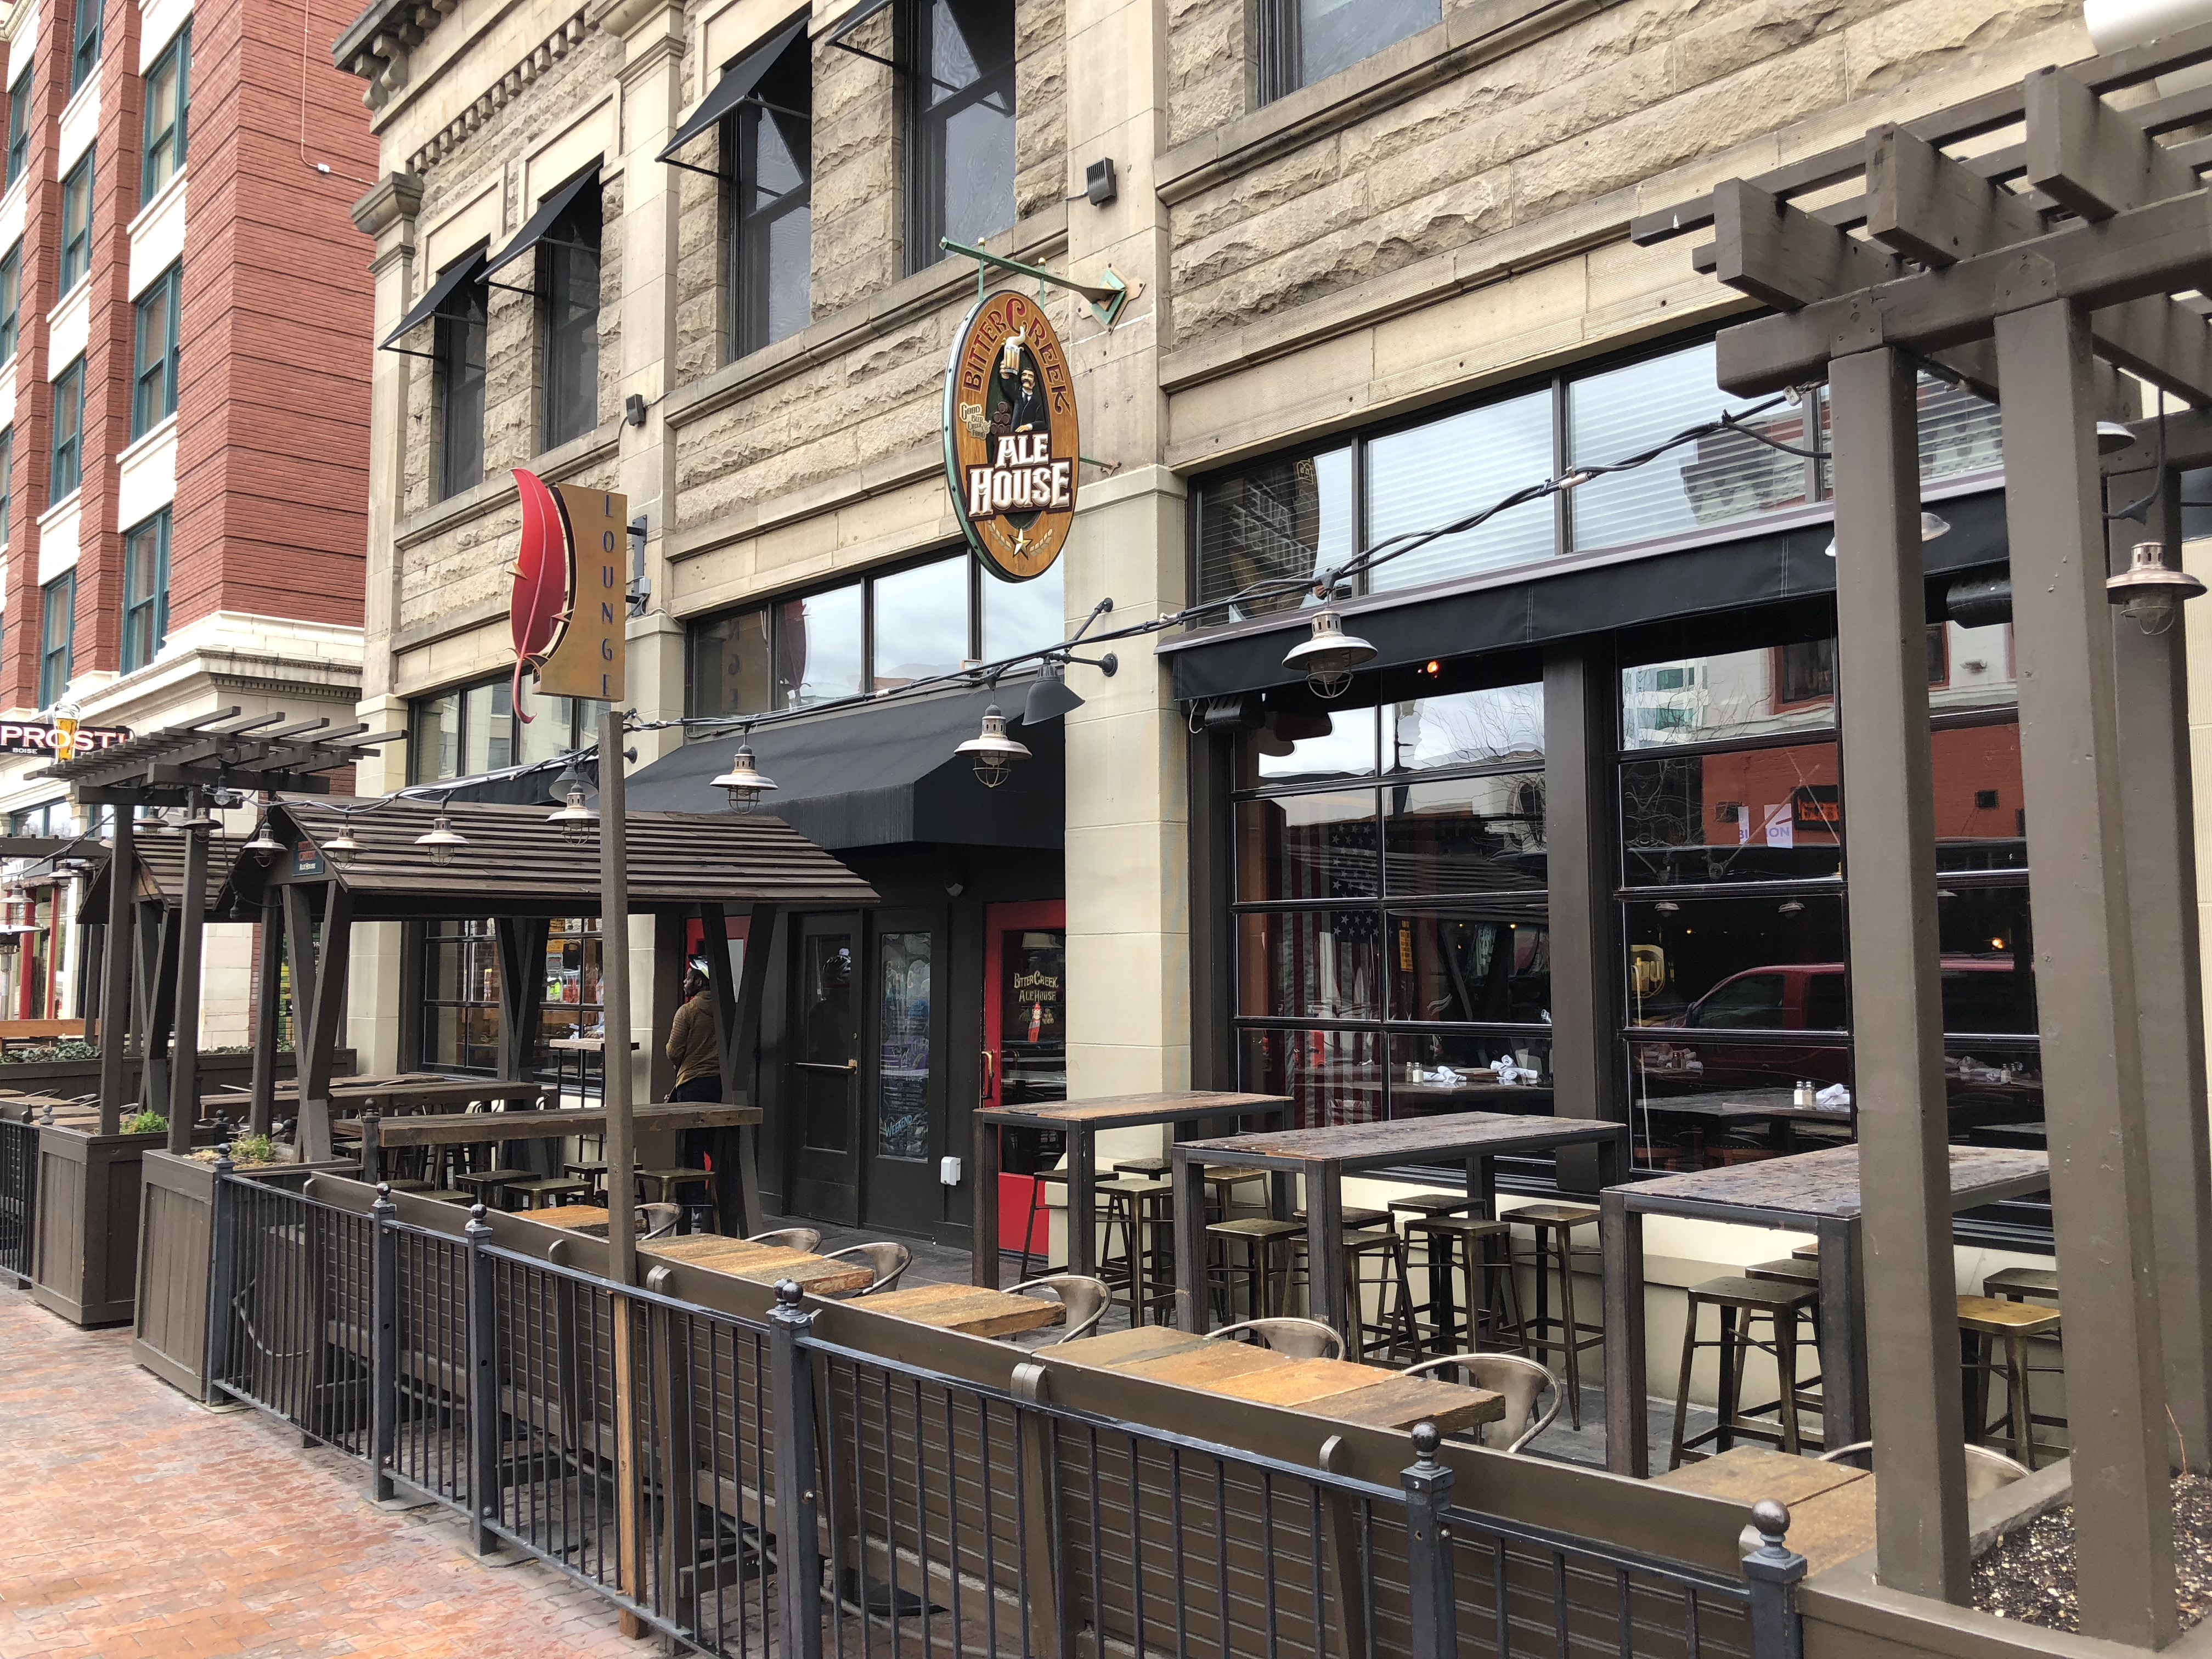 Bittercreek Alehouse located in downtown Boise is a must visit for any fan of craft beer.